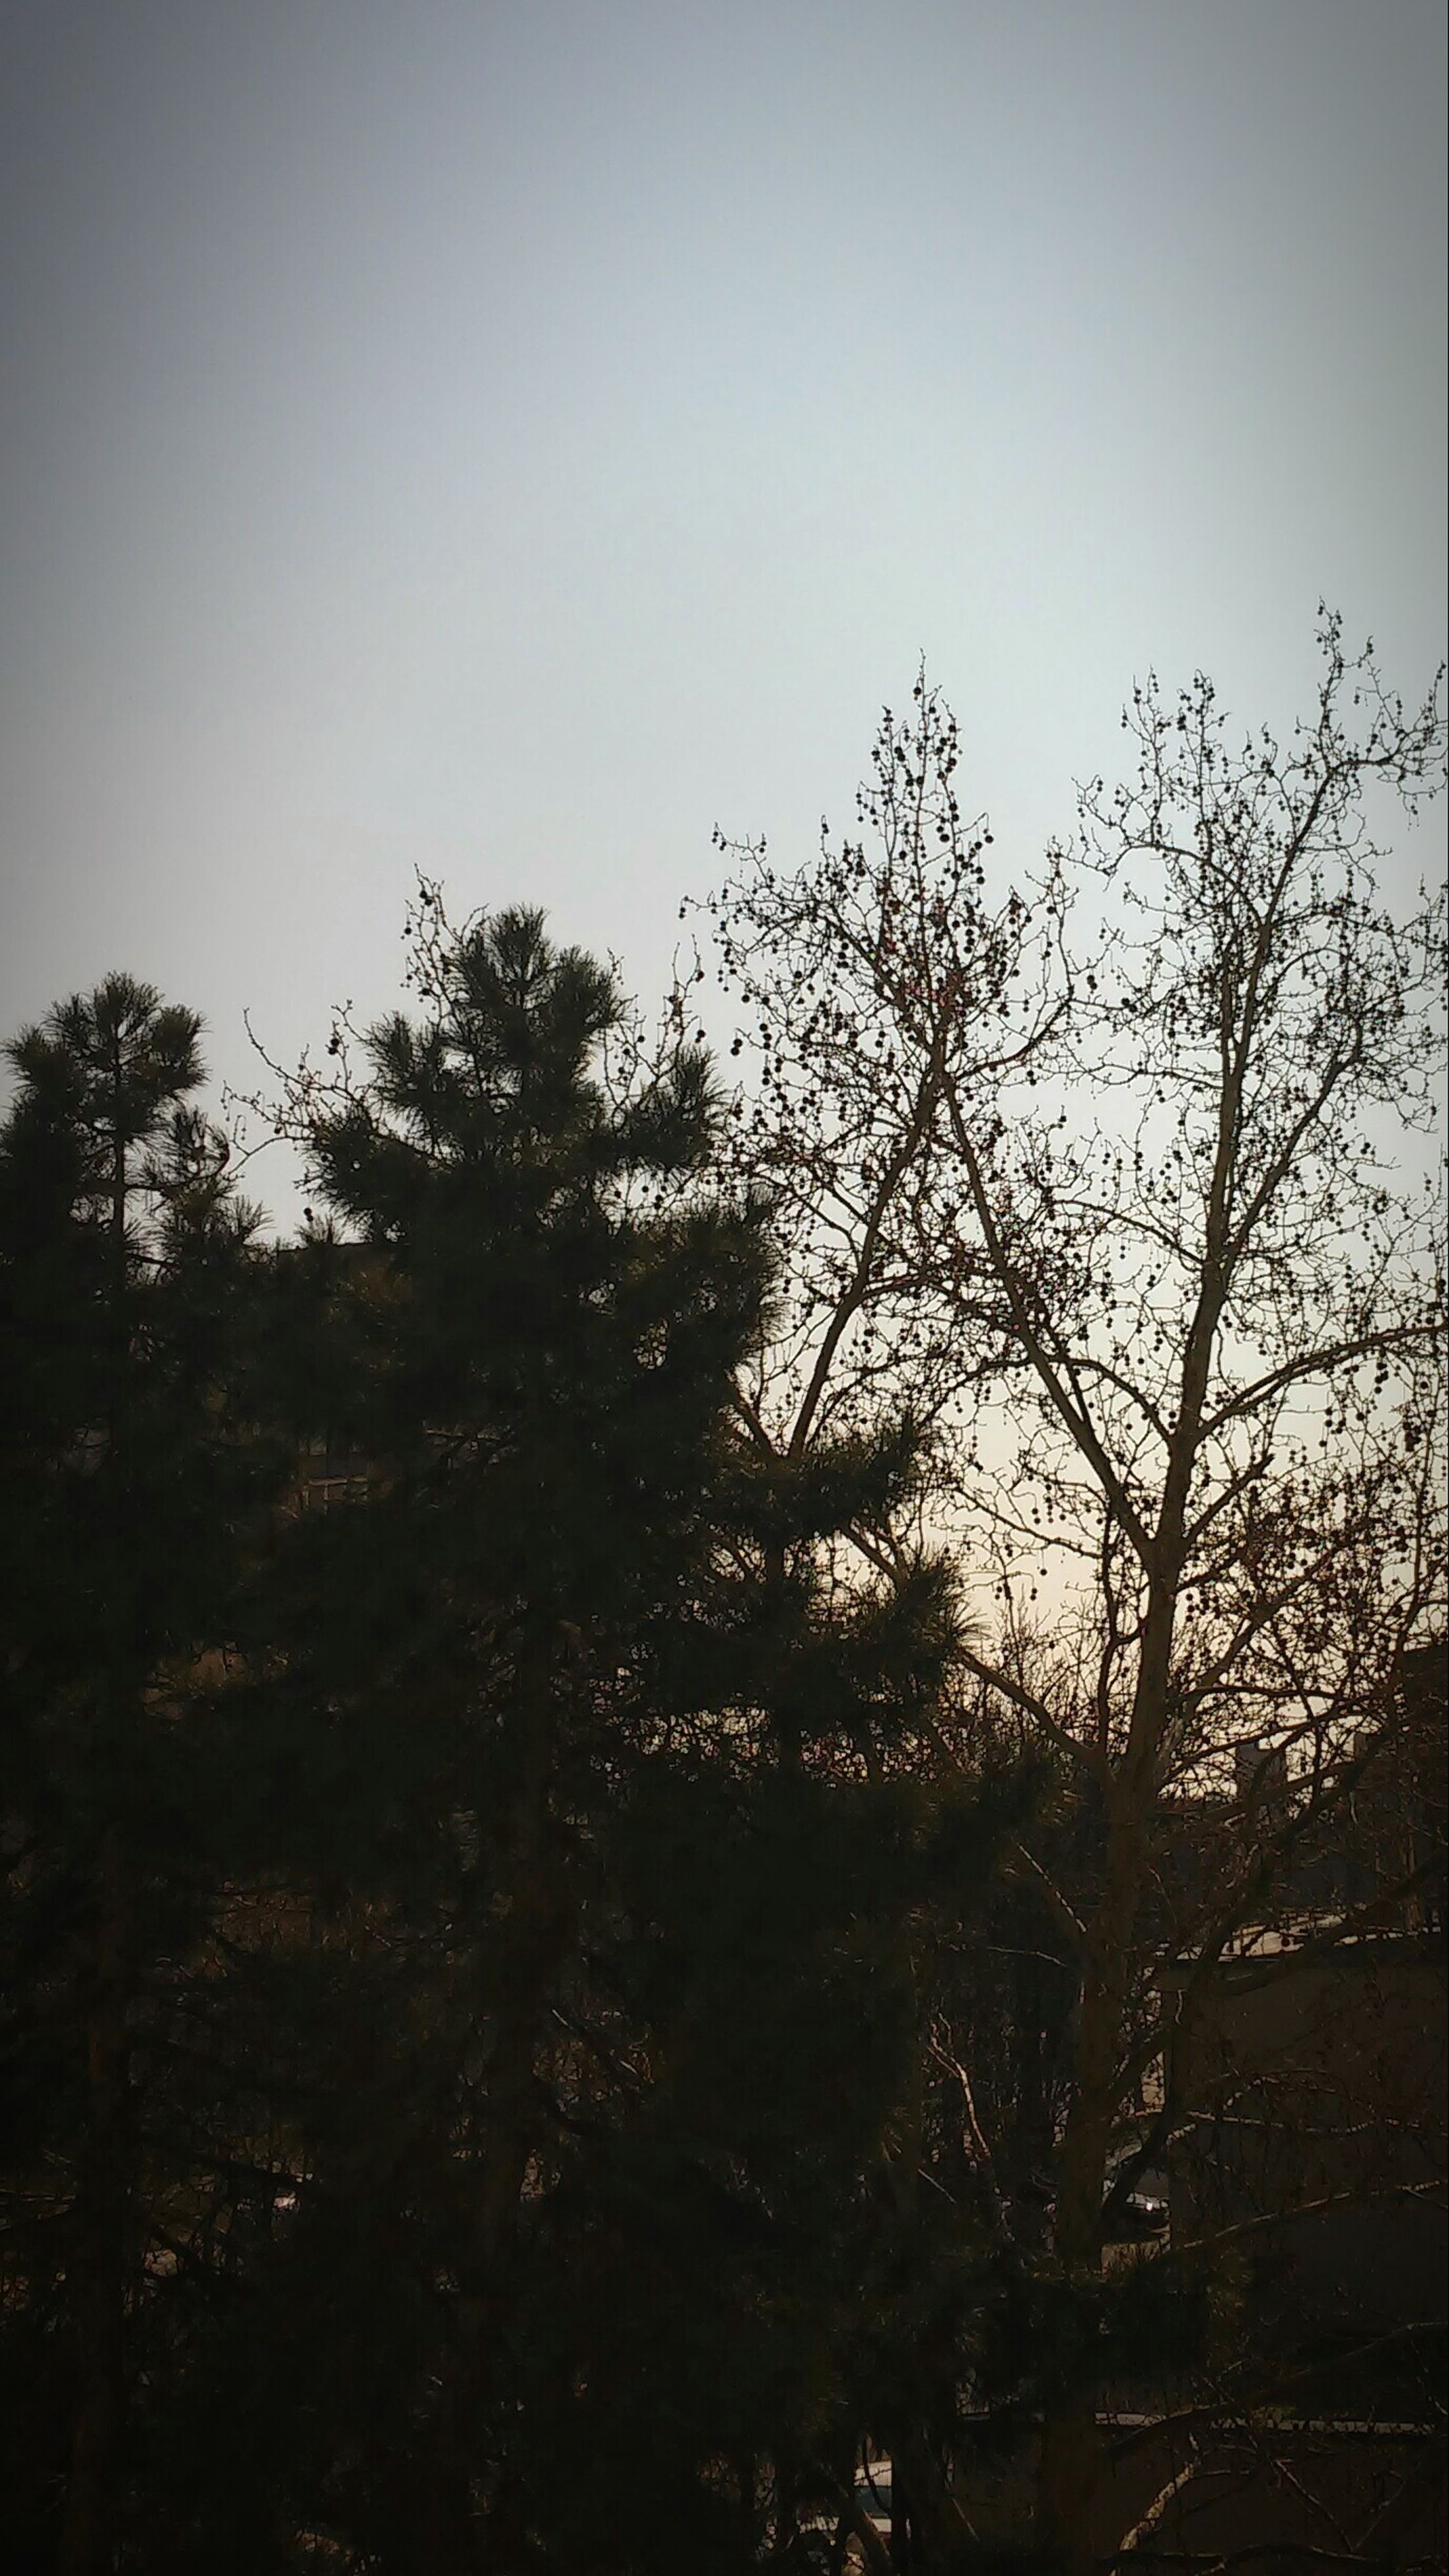 tree, clear sky, copy space, growth, silhouette, branch, nature, tranquility, low angle view, beauty in nature, tranquil scene, sky, dusk, bare tree, outdoors, scenics, no people, plant, field, day